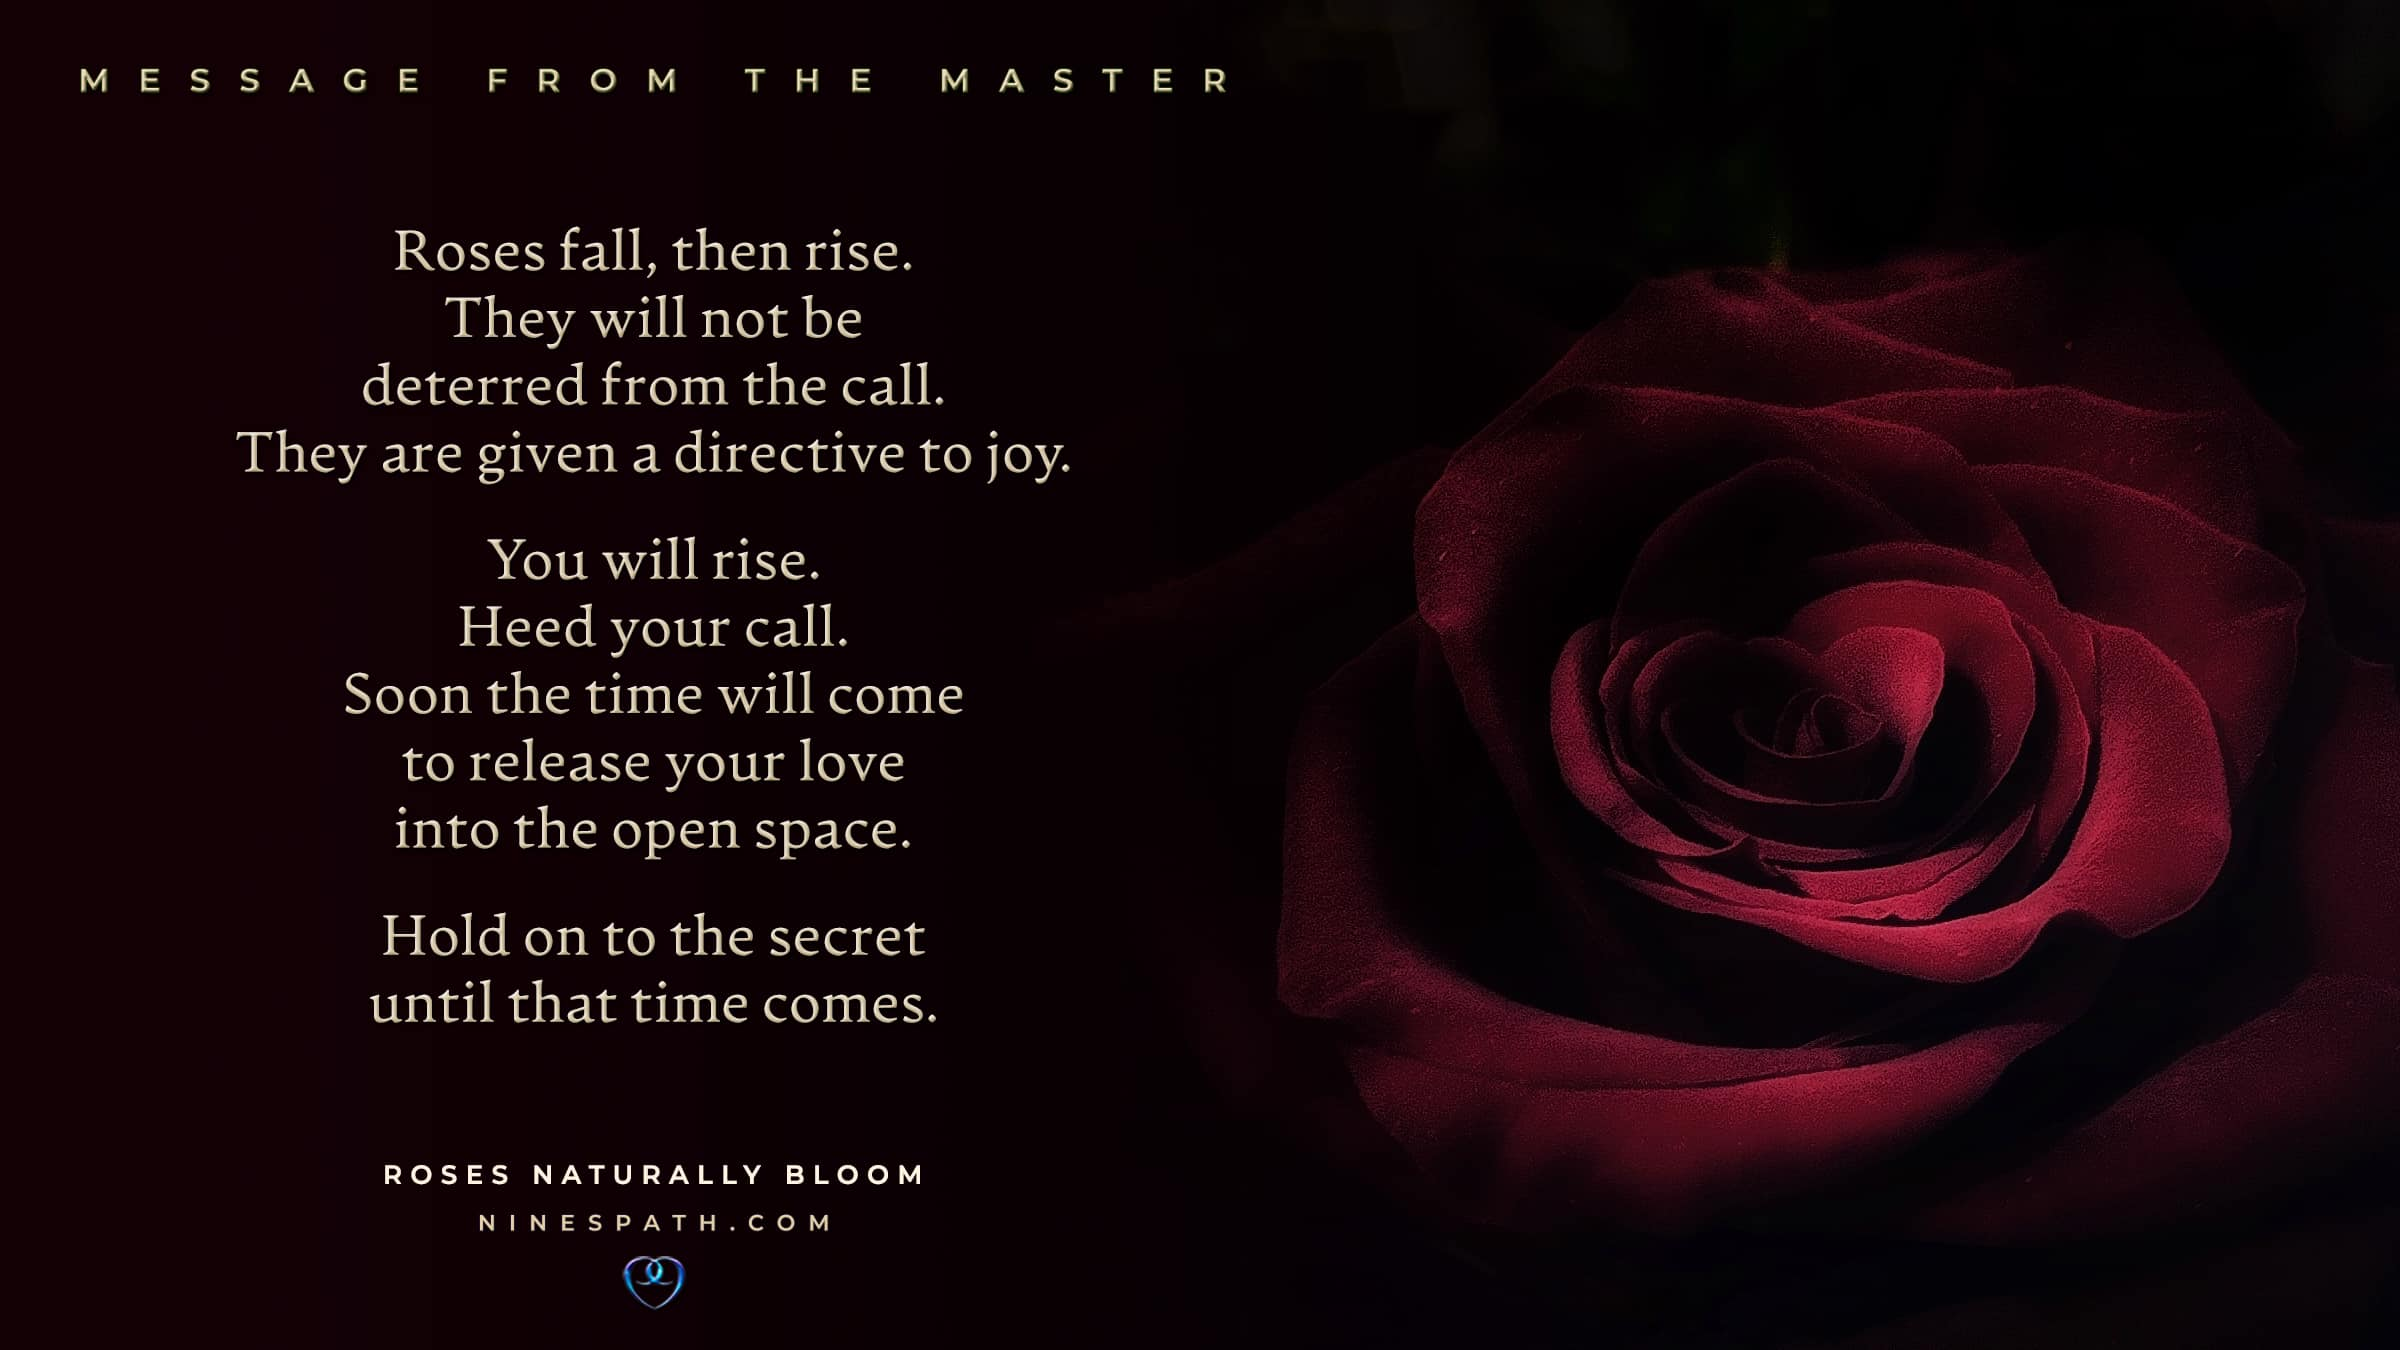 Nine's Path Order Master roses